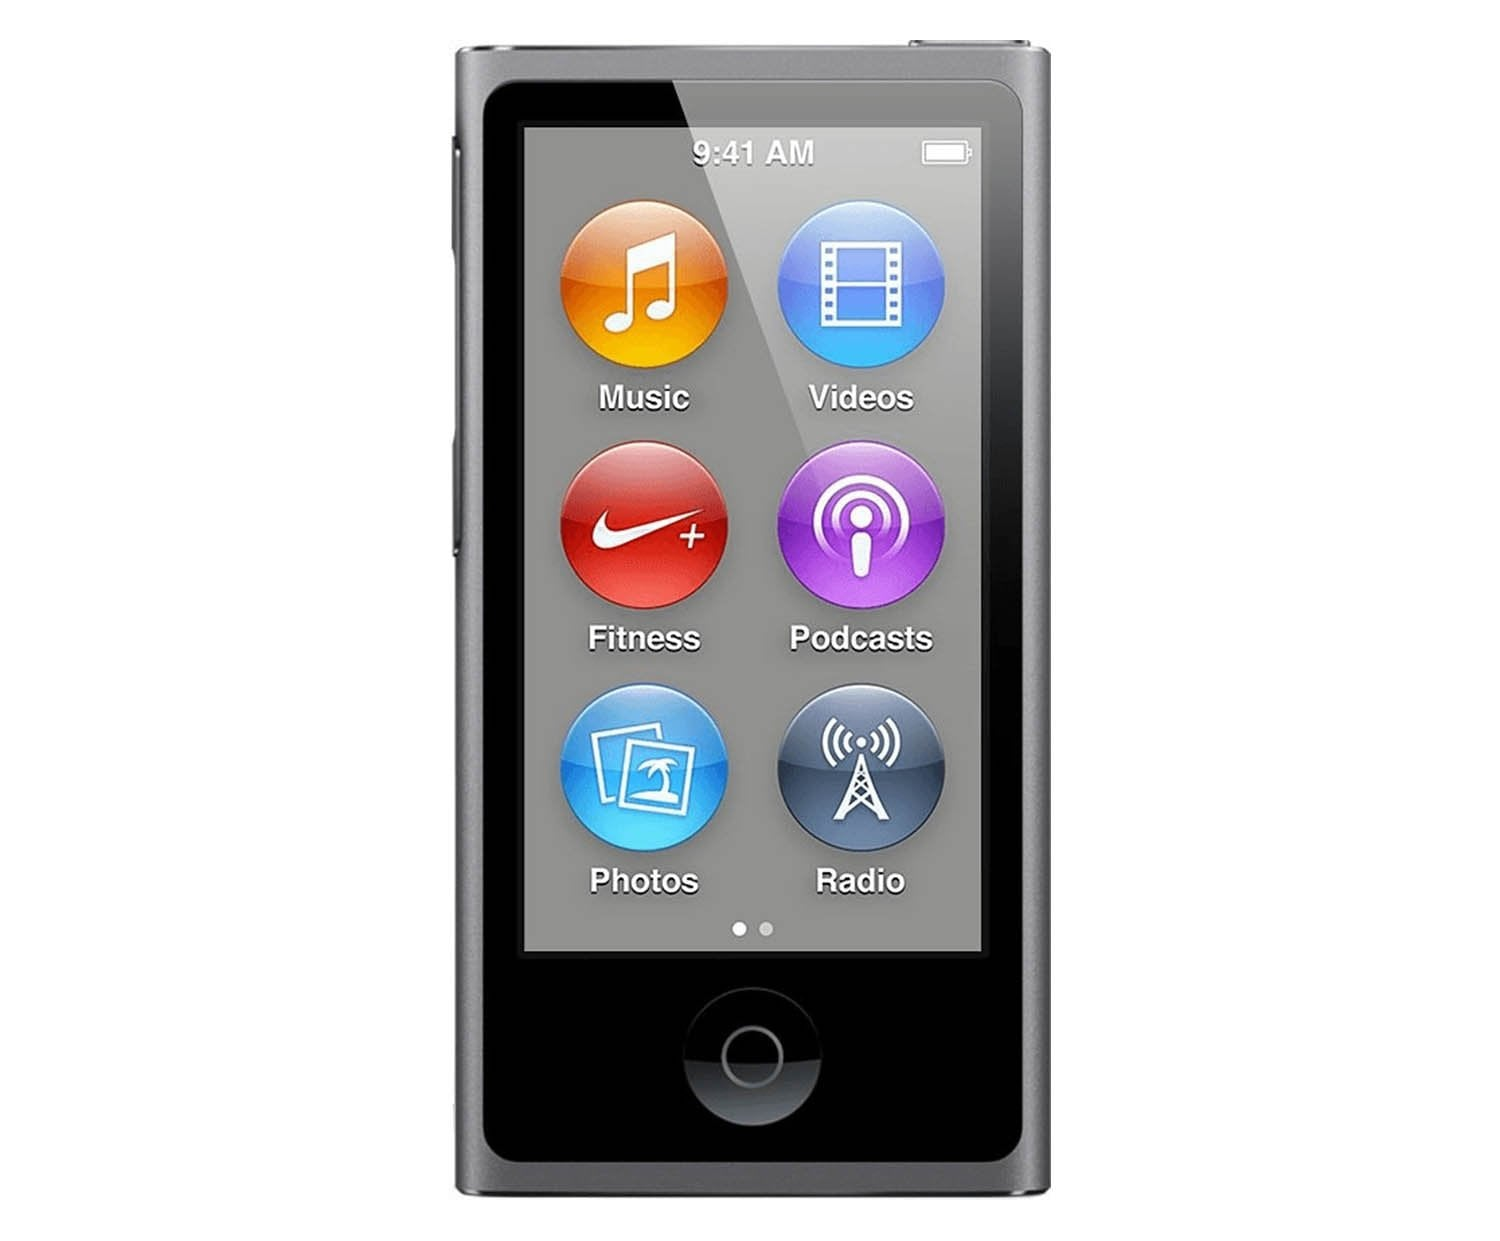 apple ipod nano 7 generation 16 gb space grau. Black Bedroom Furniture Sets. Home Design Ideas